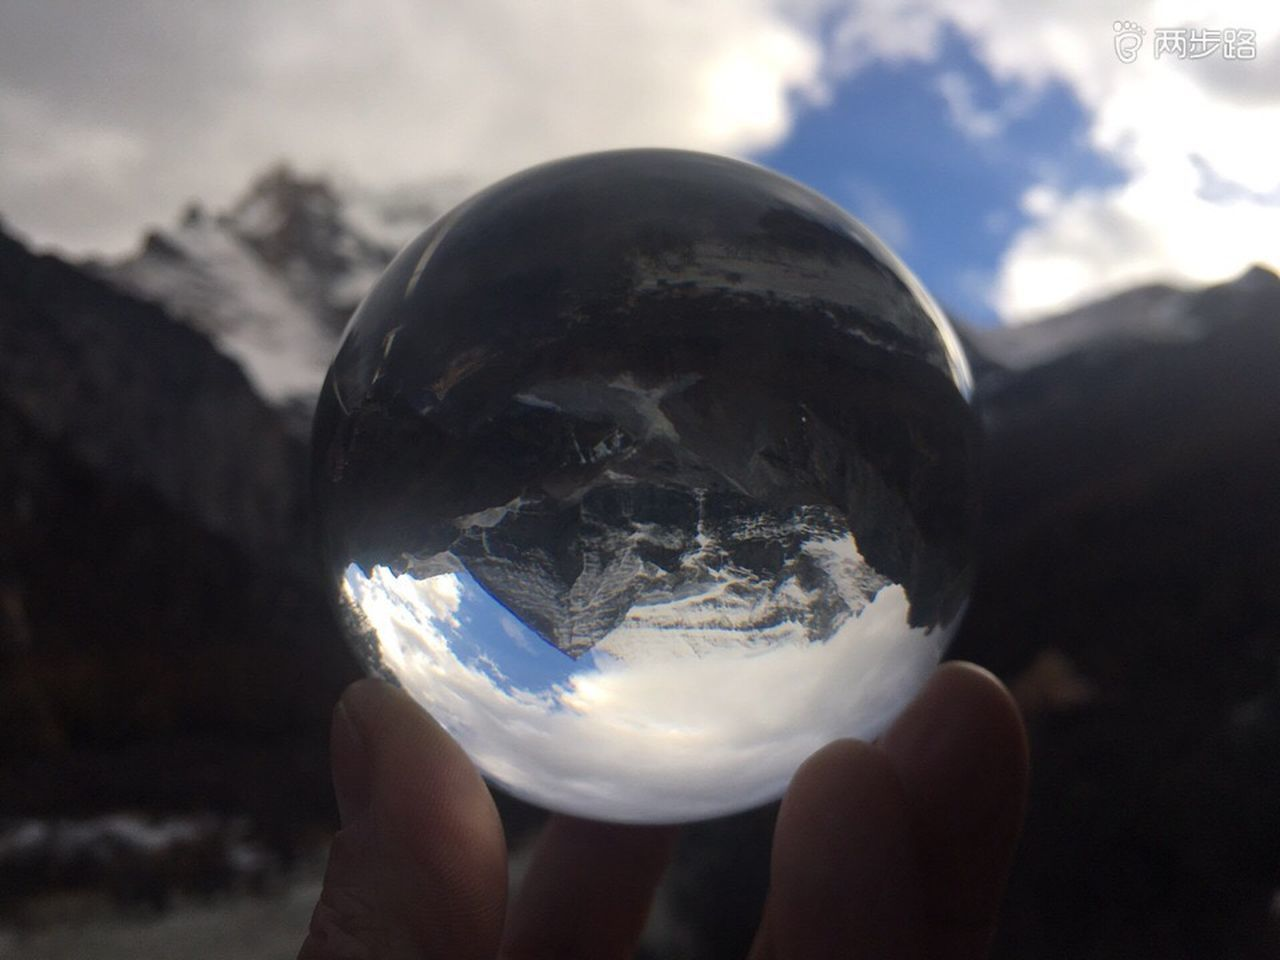 human hand, holding, hand, human body part, one person, sphere, nature, crystal ball, unrecognizable person, human finger, close-up, sky, finger, focus on foreground, body part, transparent, real people, ball, reflection, outdoors